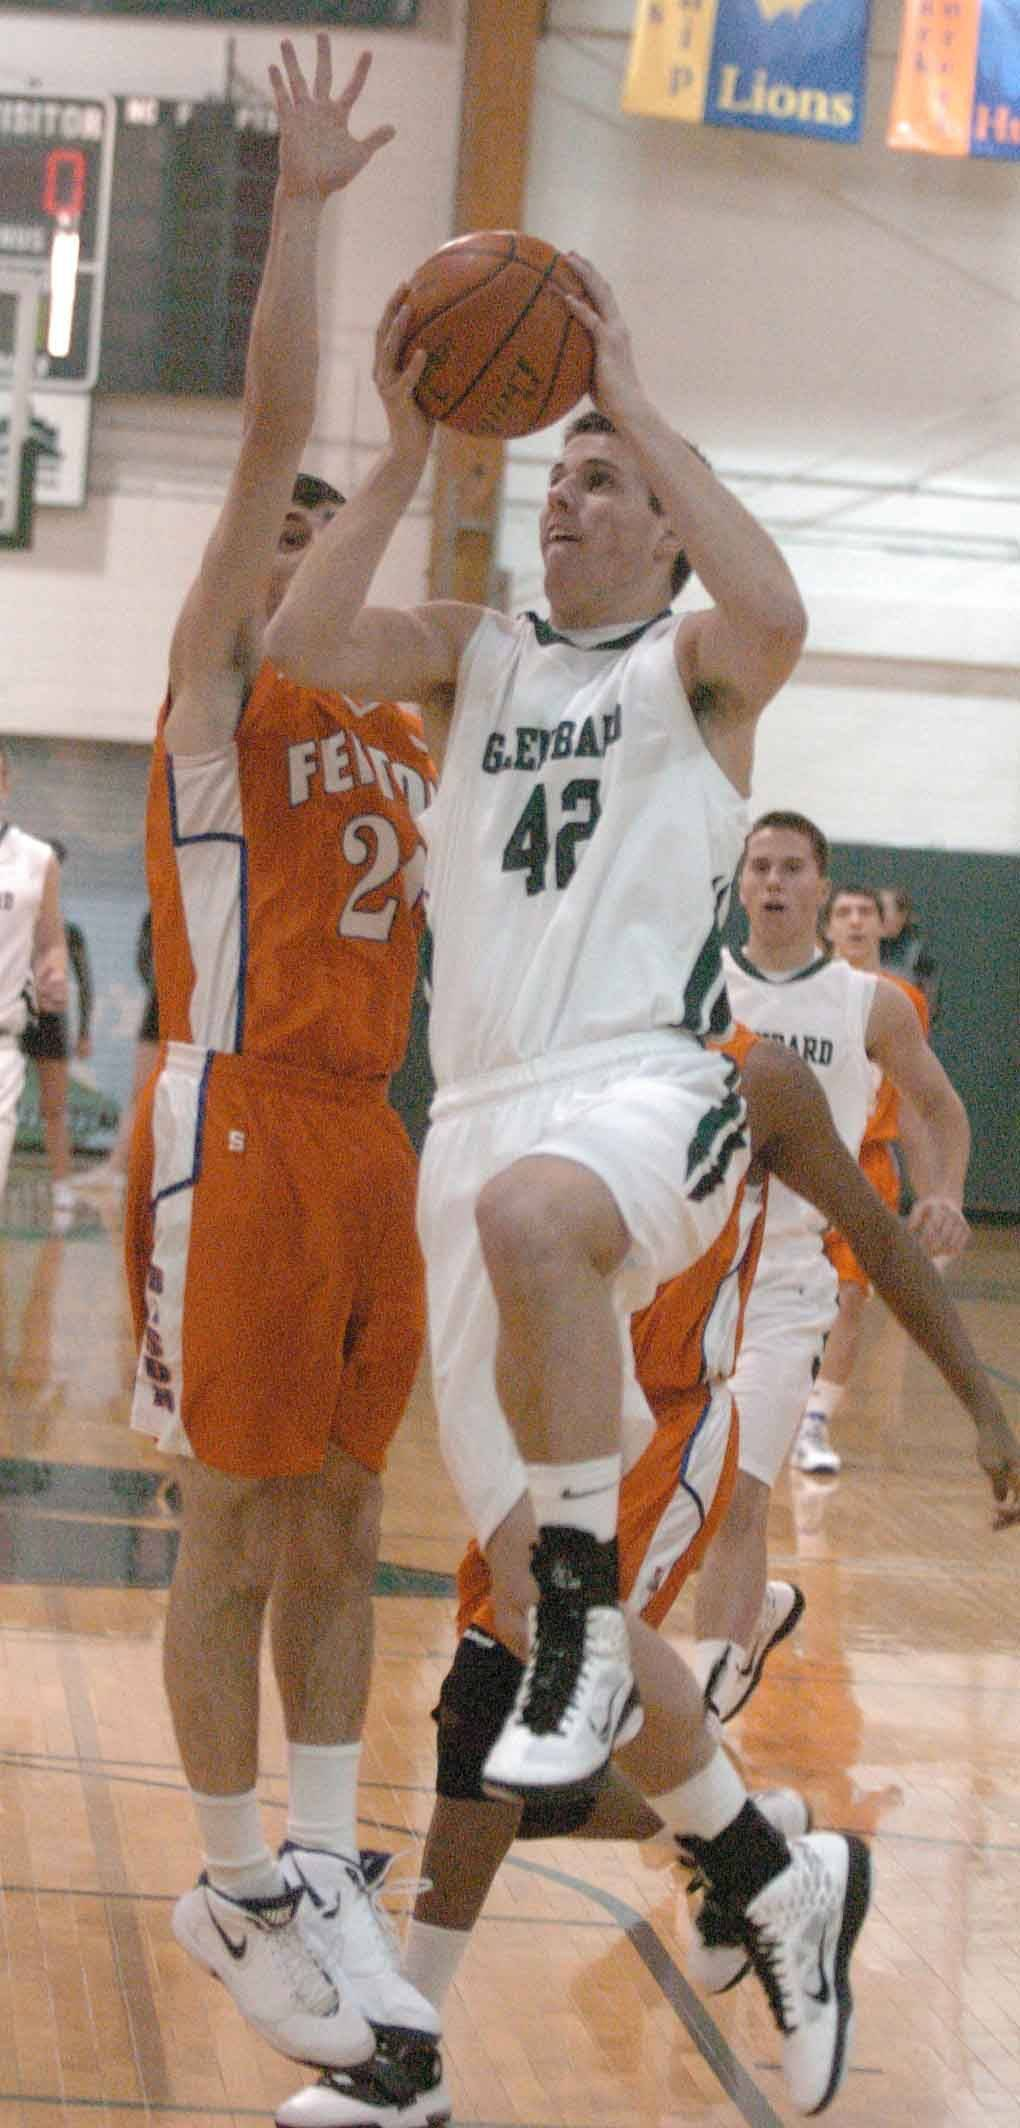 Michael Mache of Glenbard West goes up for a shot against Fenton.